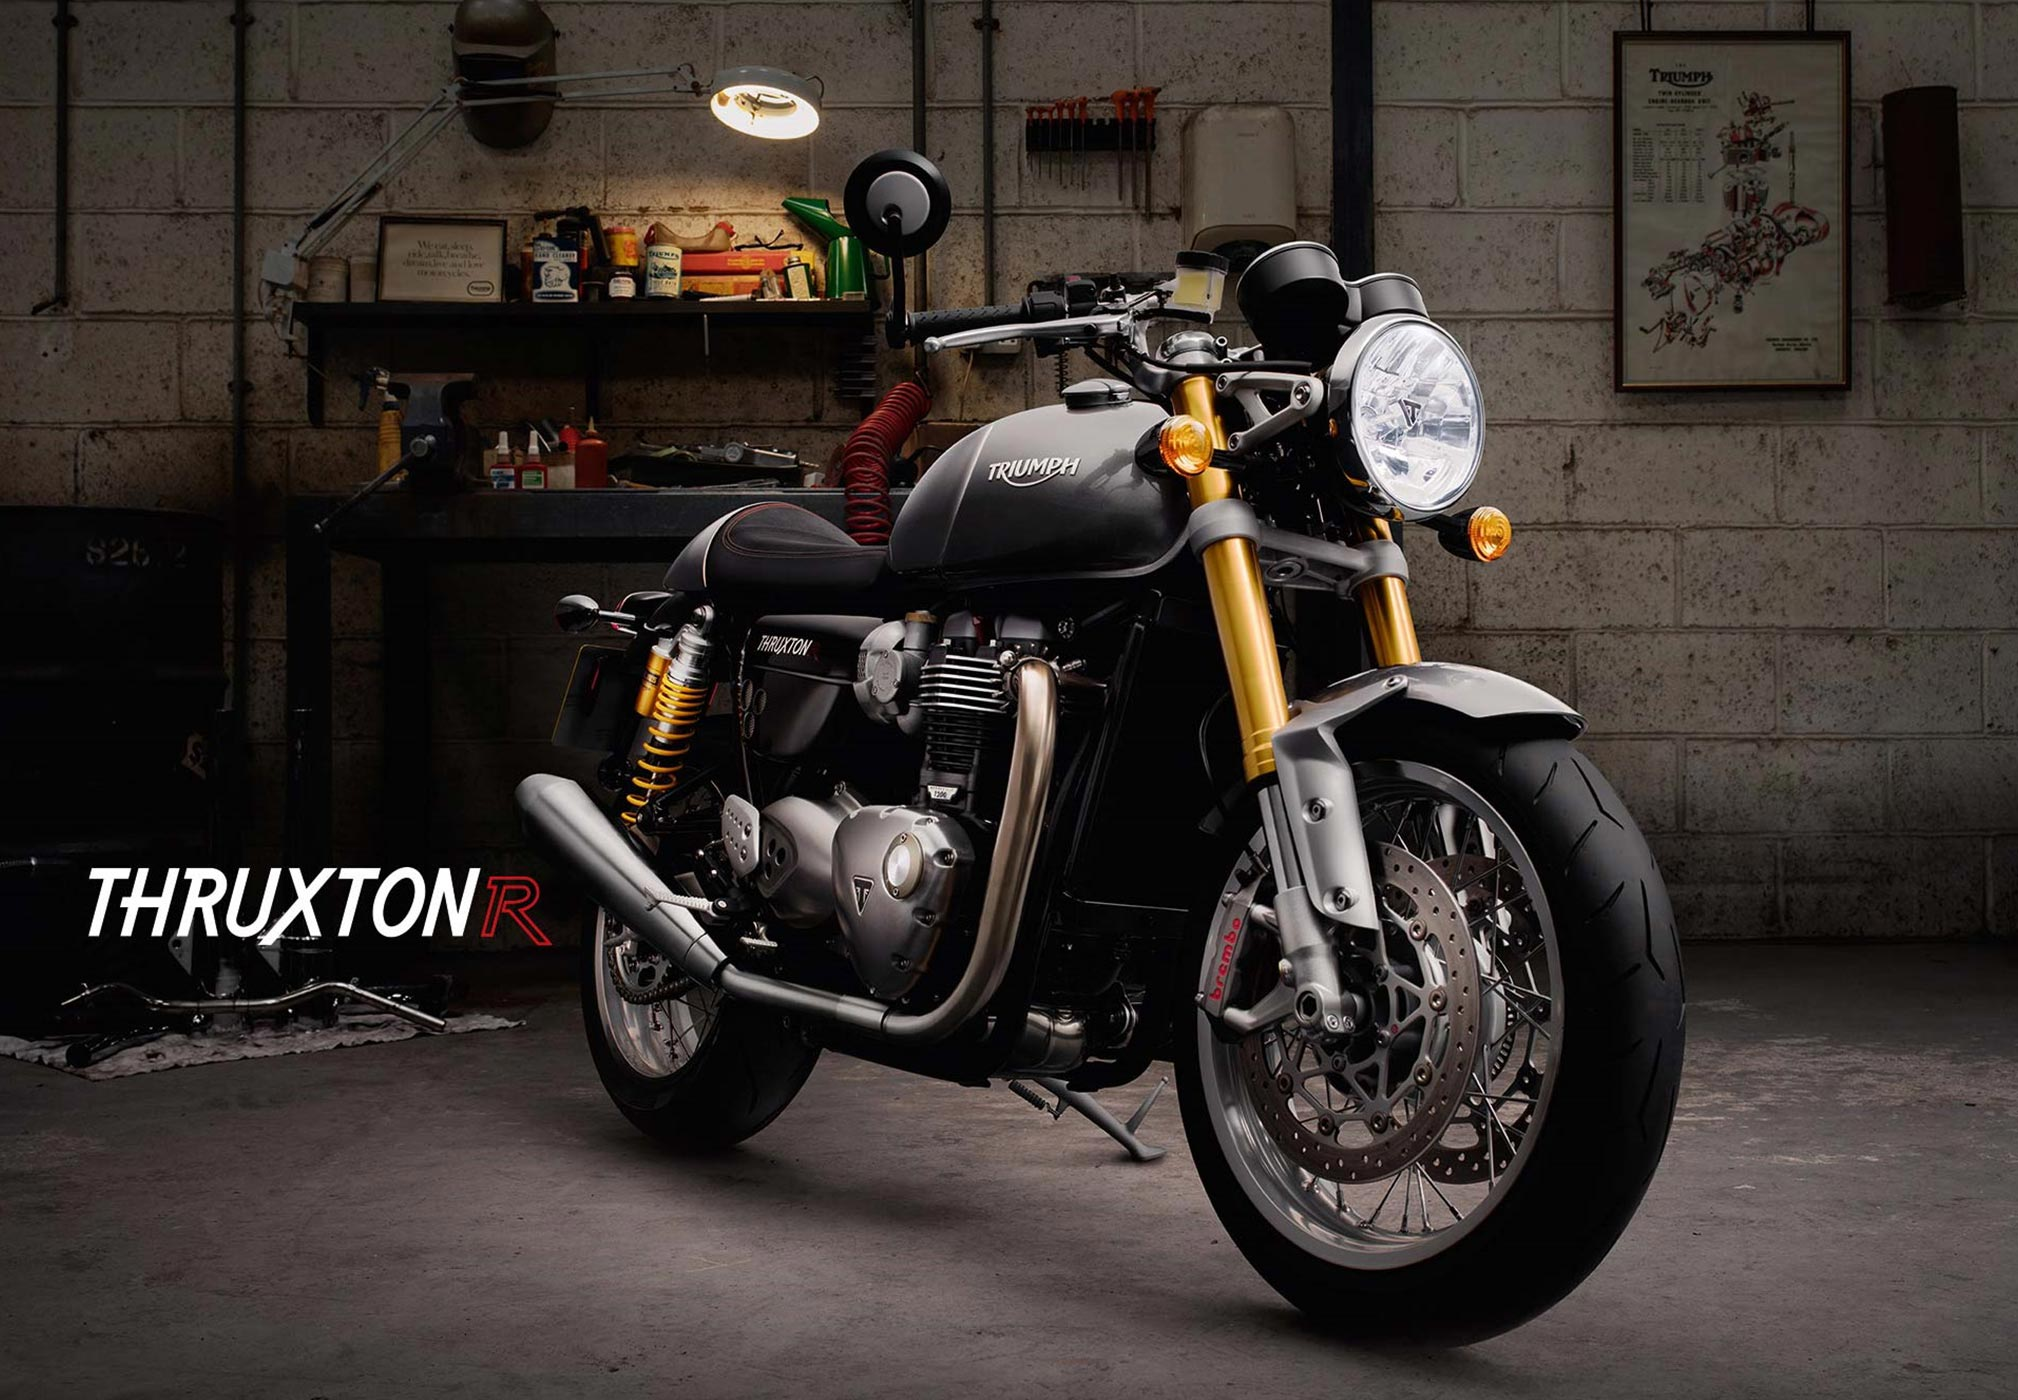 2018 triumph thruxton 1200r review totalmotorcycle. Black Bedroom Furniture Sets. Home Design Ideas